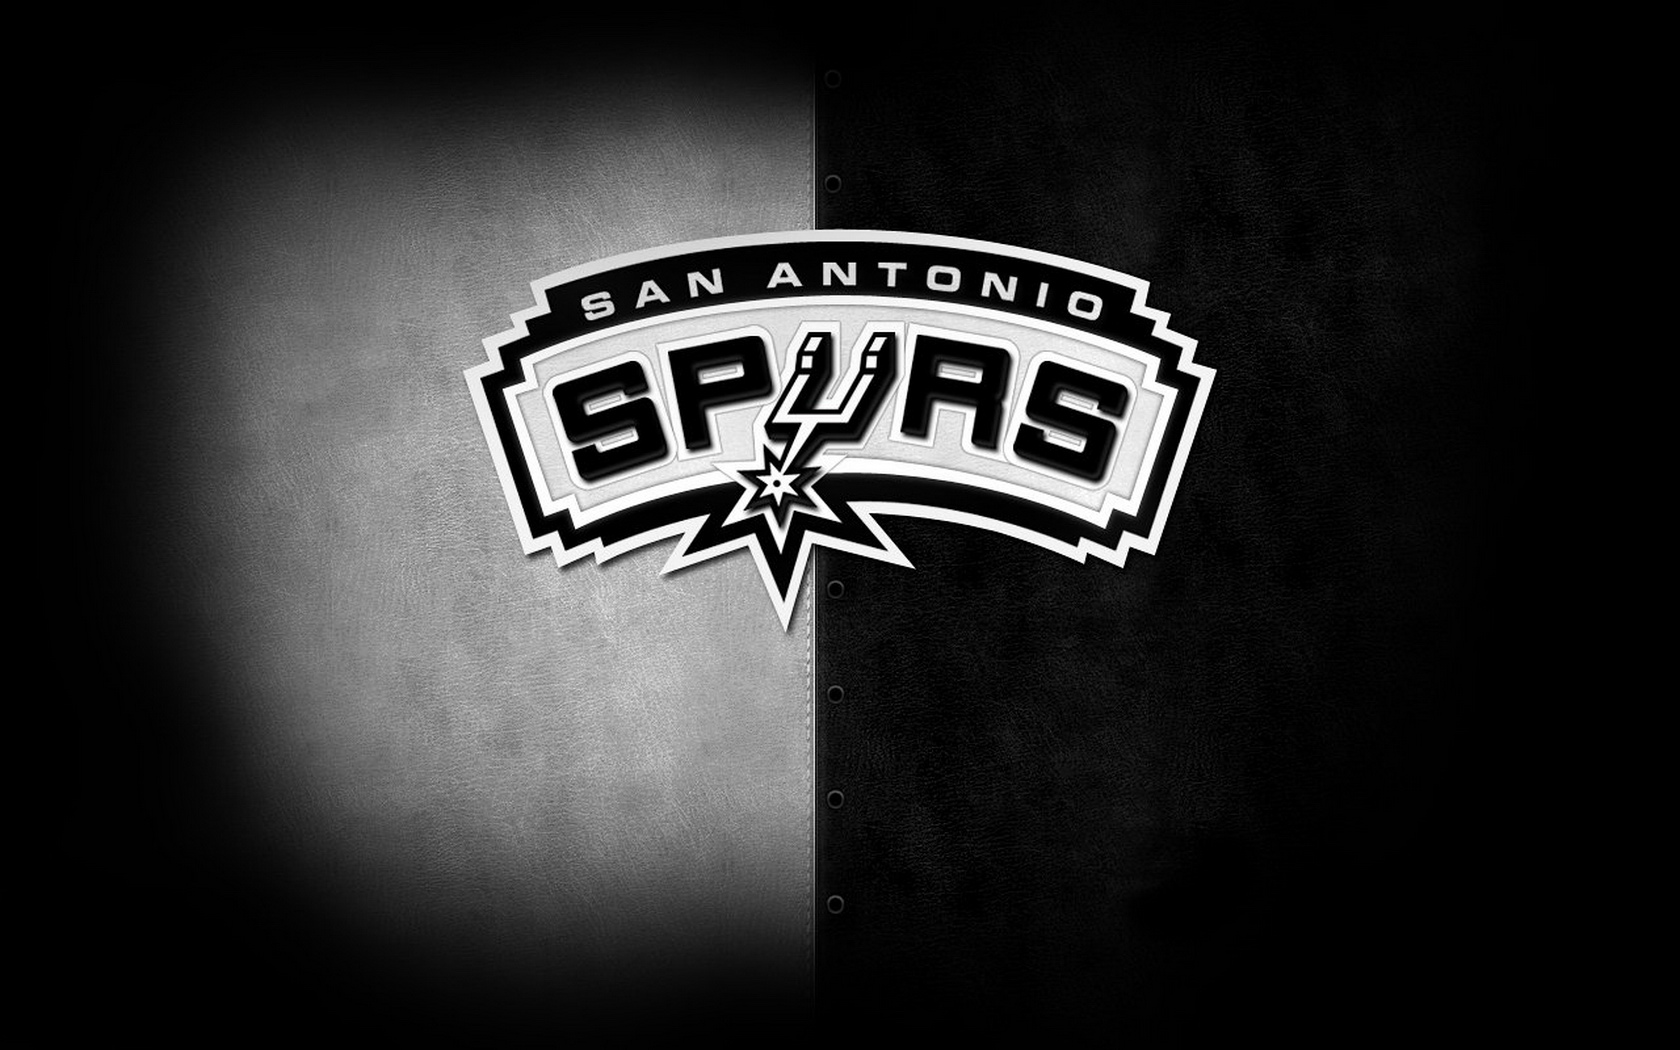 Free Spurs Wallpaper